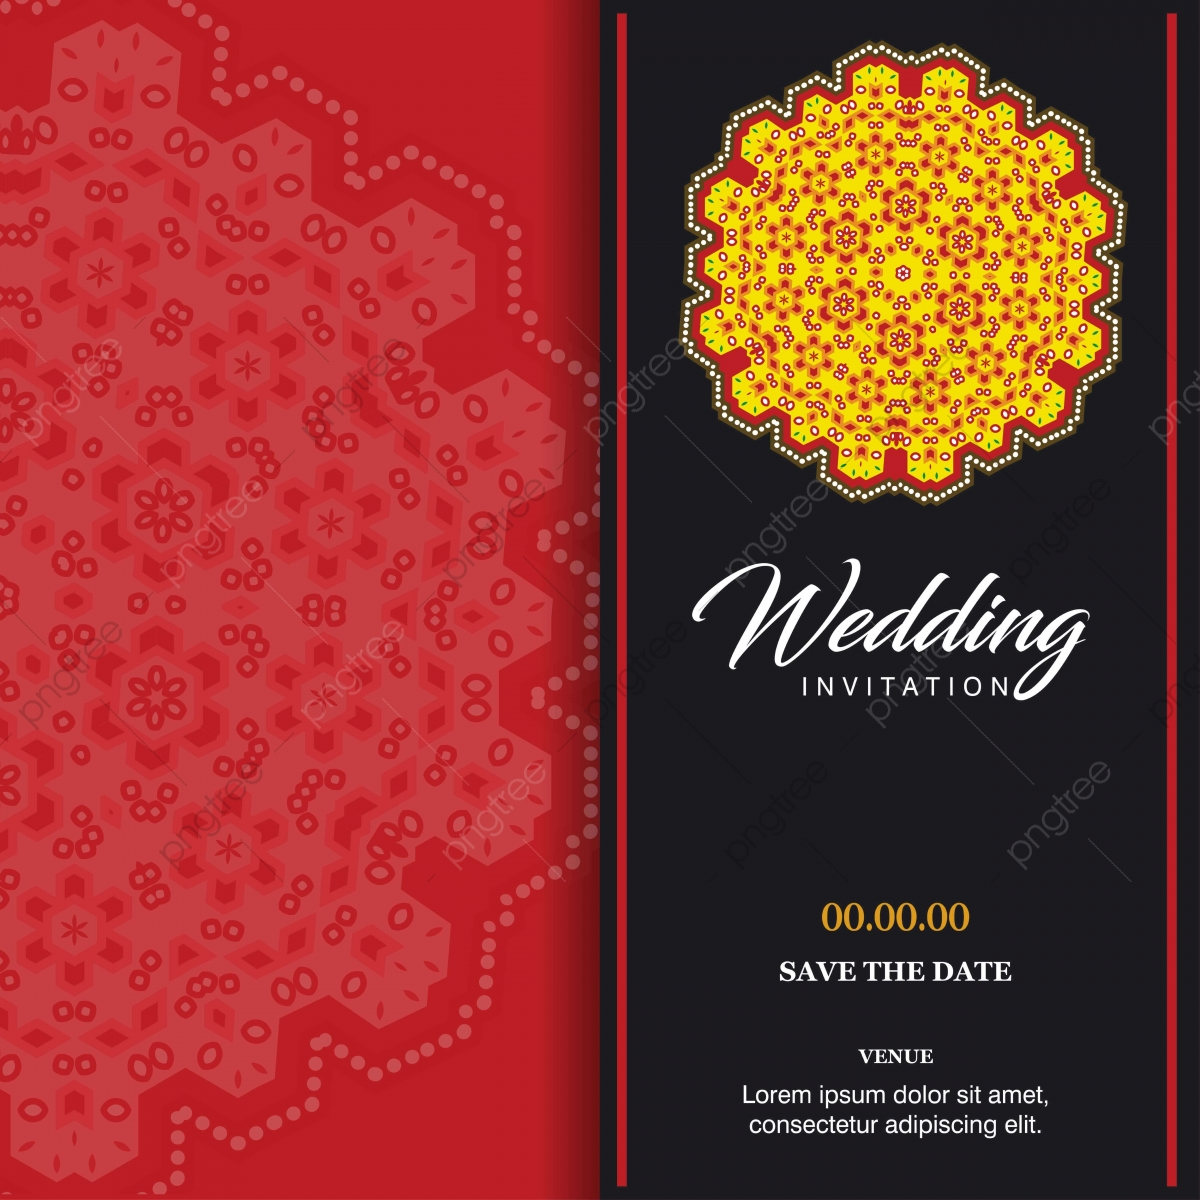 Indian Wedding Card Png Images Vector And Psd Files Free Download On Pngtree